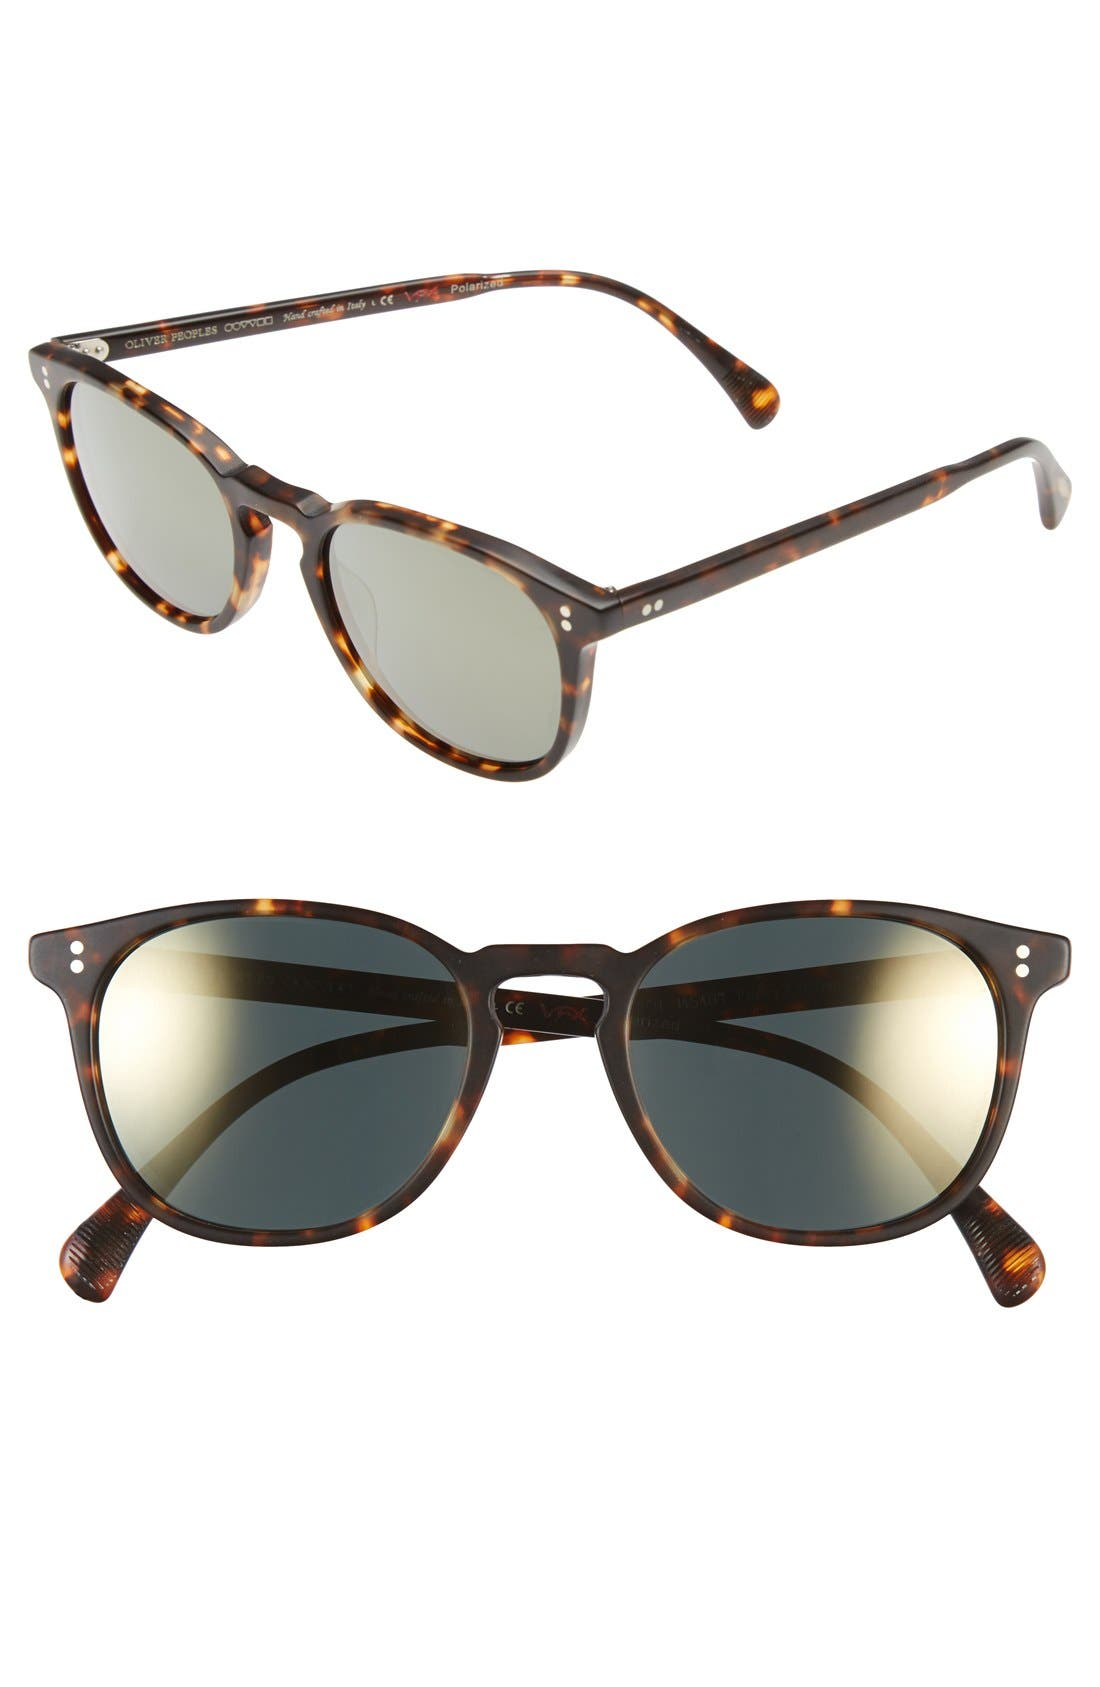 'Finley' 51mm Polarized Sunglasses,                             Main thumbnail 1, color,                             Brown/ Tortoise/ Gold Polar